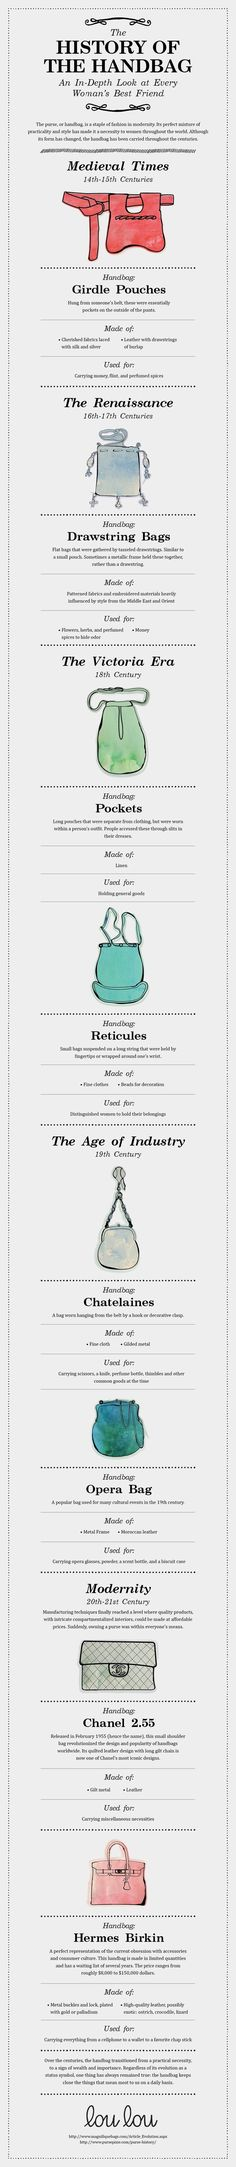 Unique Infographic Design, The History Of The Handbag #Infographic #Design #fashionhistory #handbags #bags #womensfashion